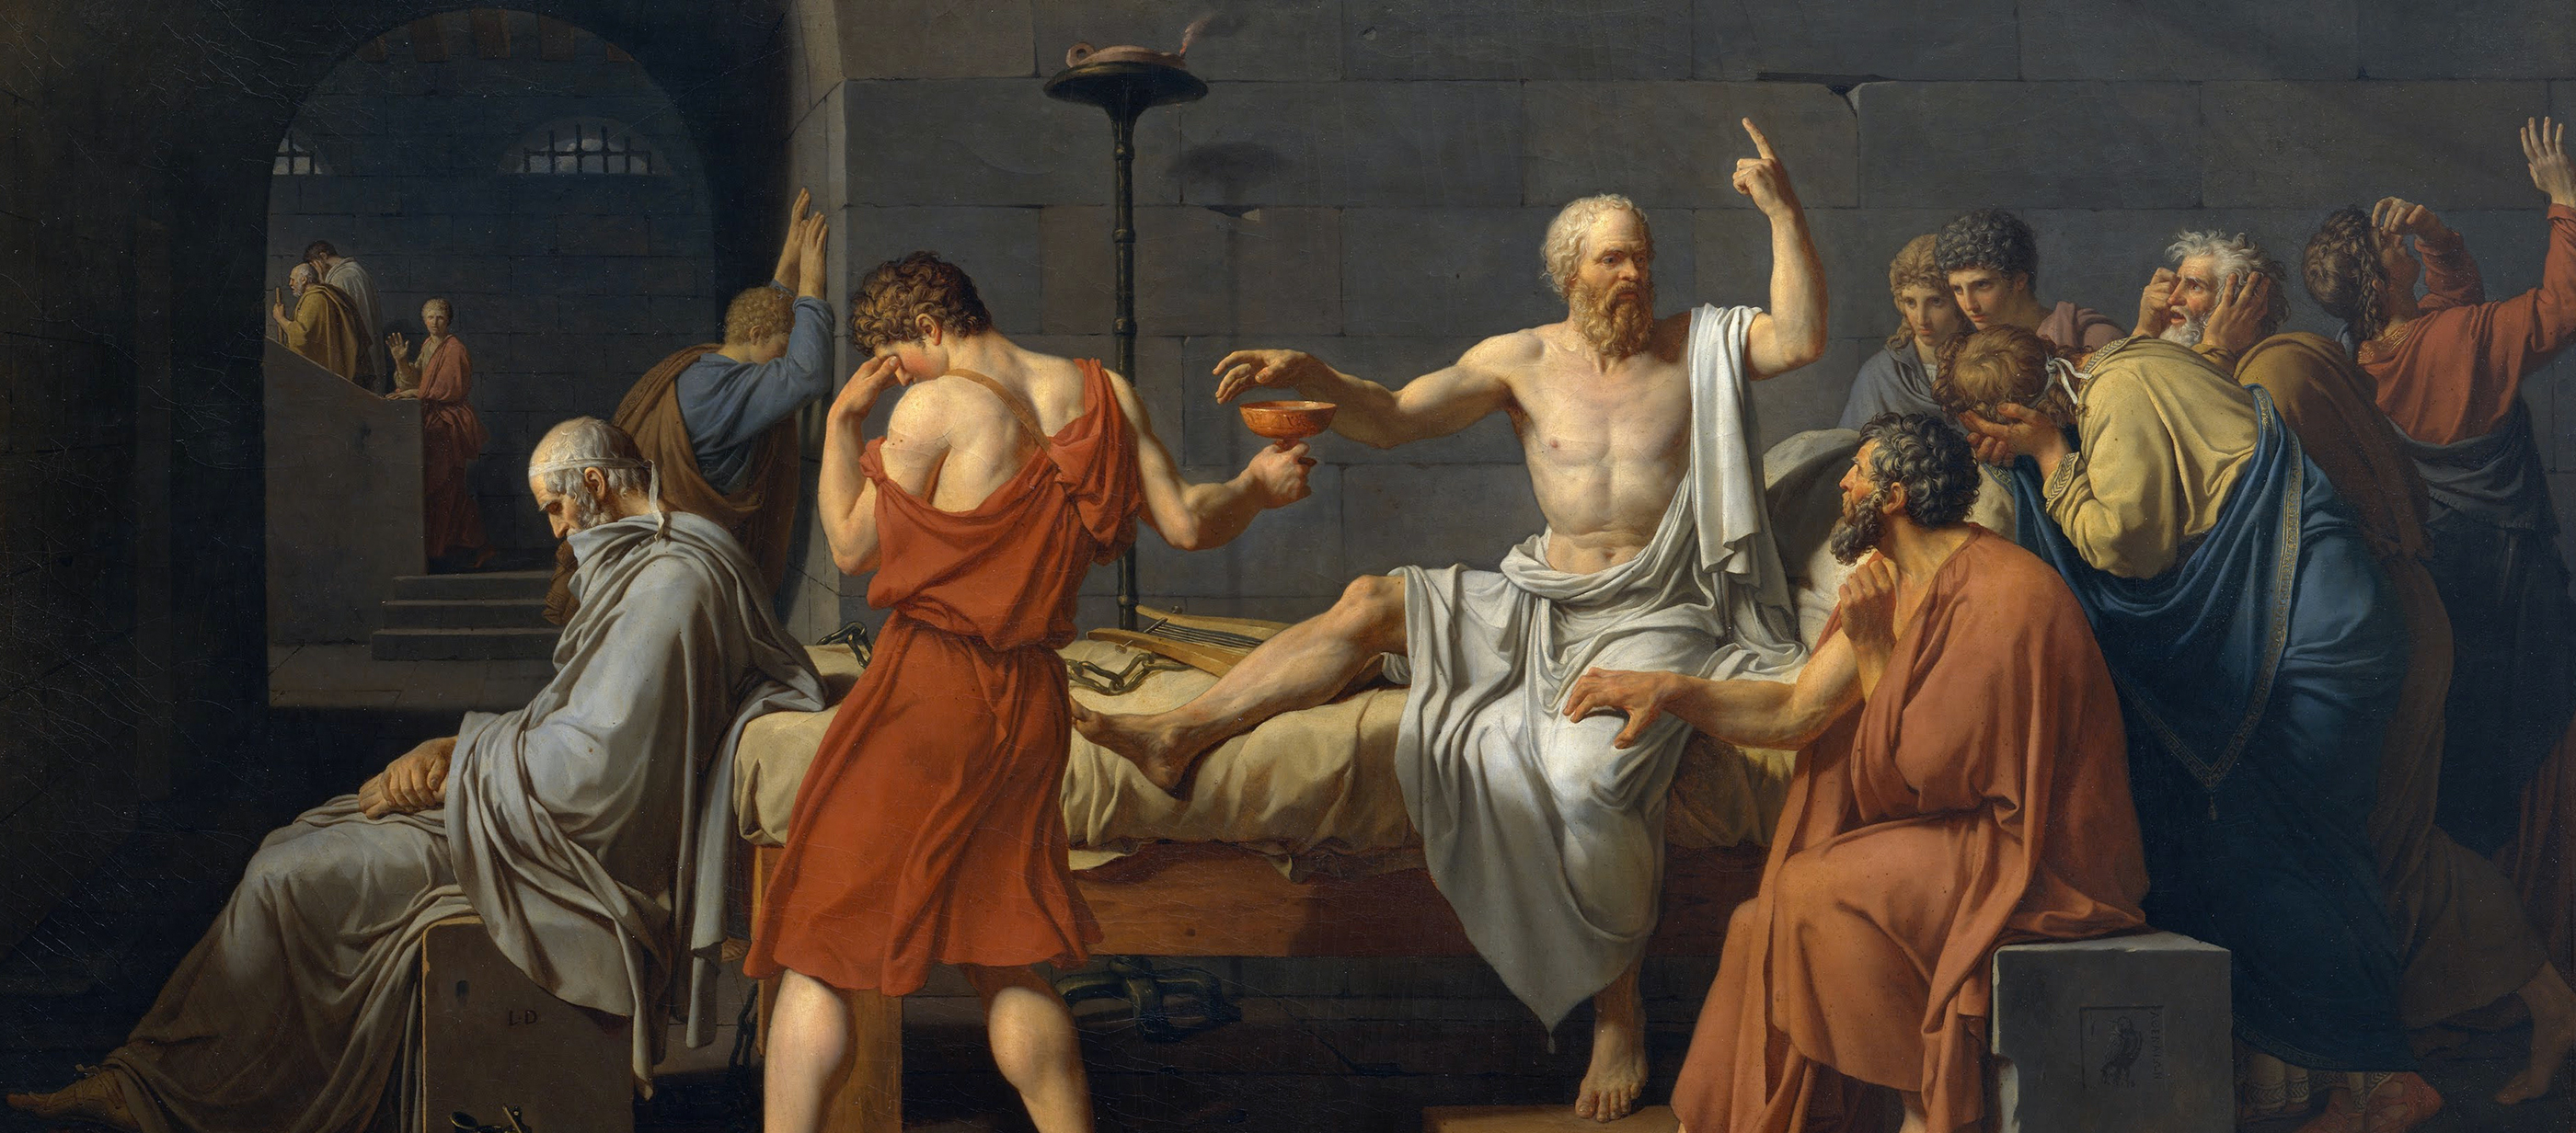 The Death of Socrates, by Jacques-Louis David, 1787.